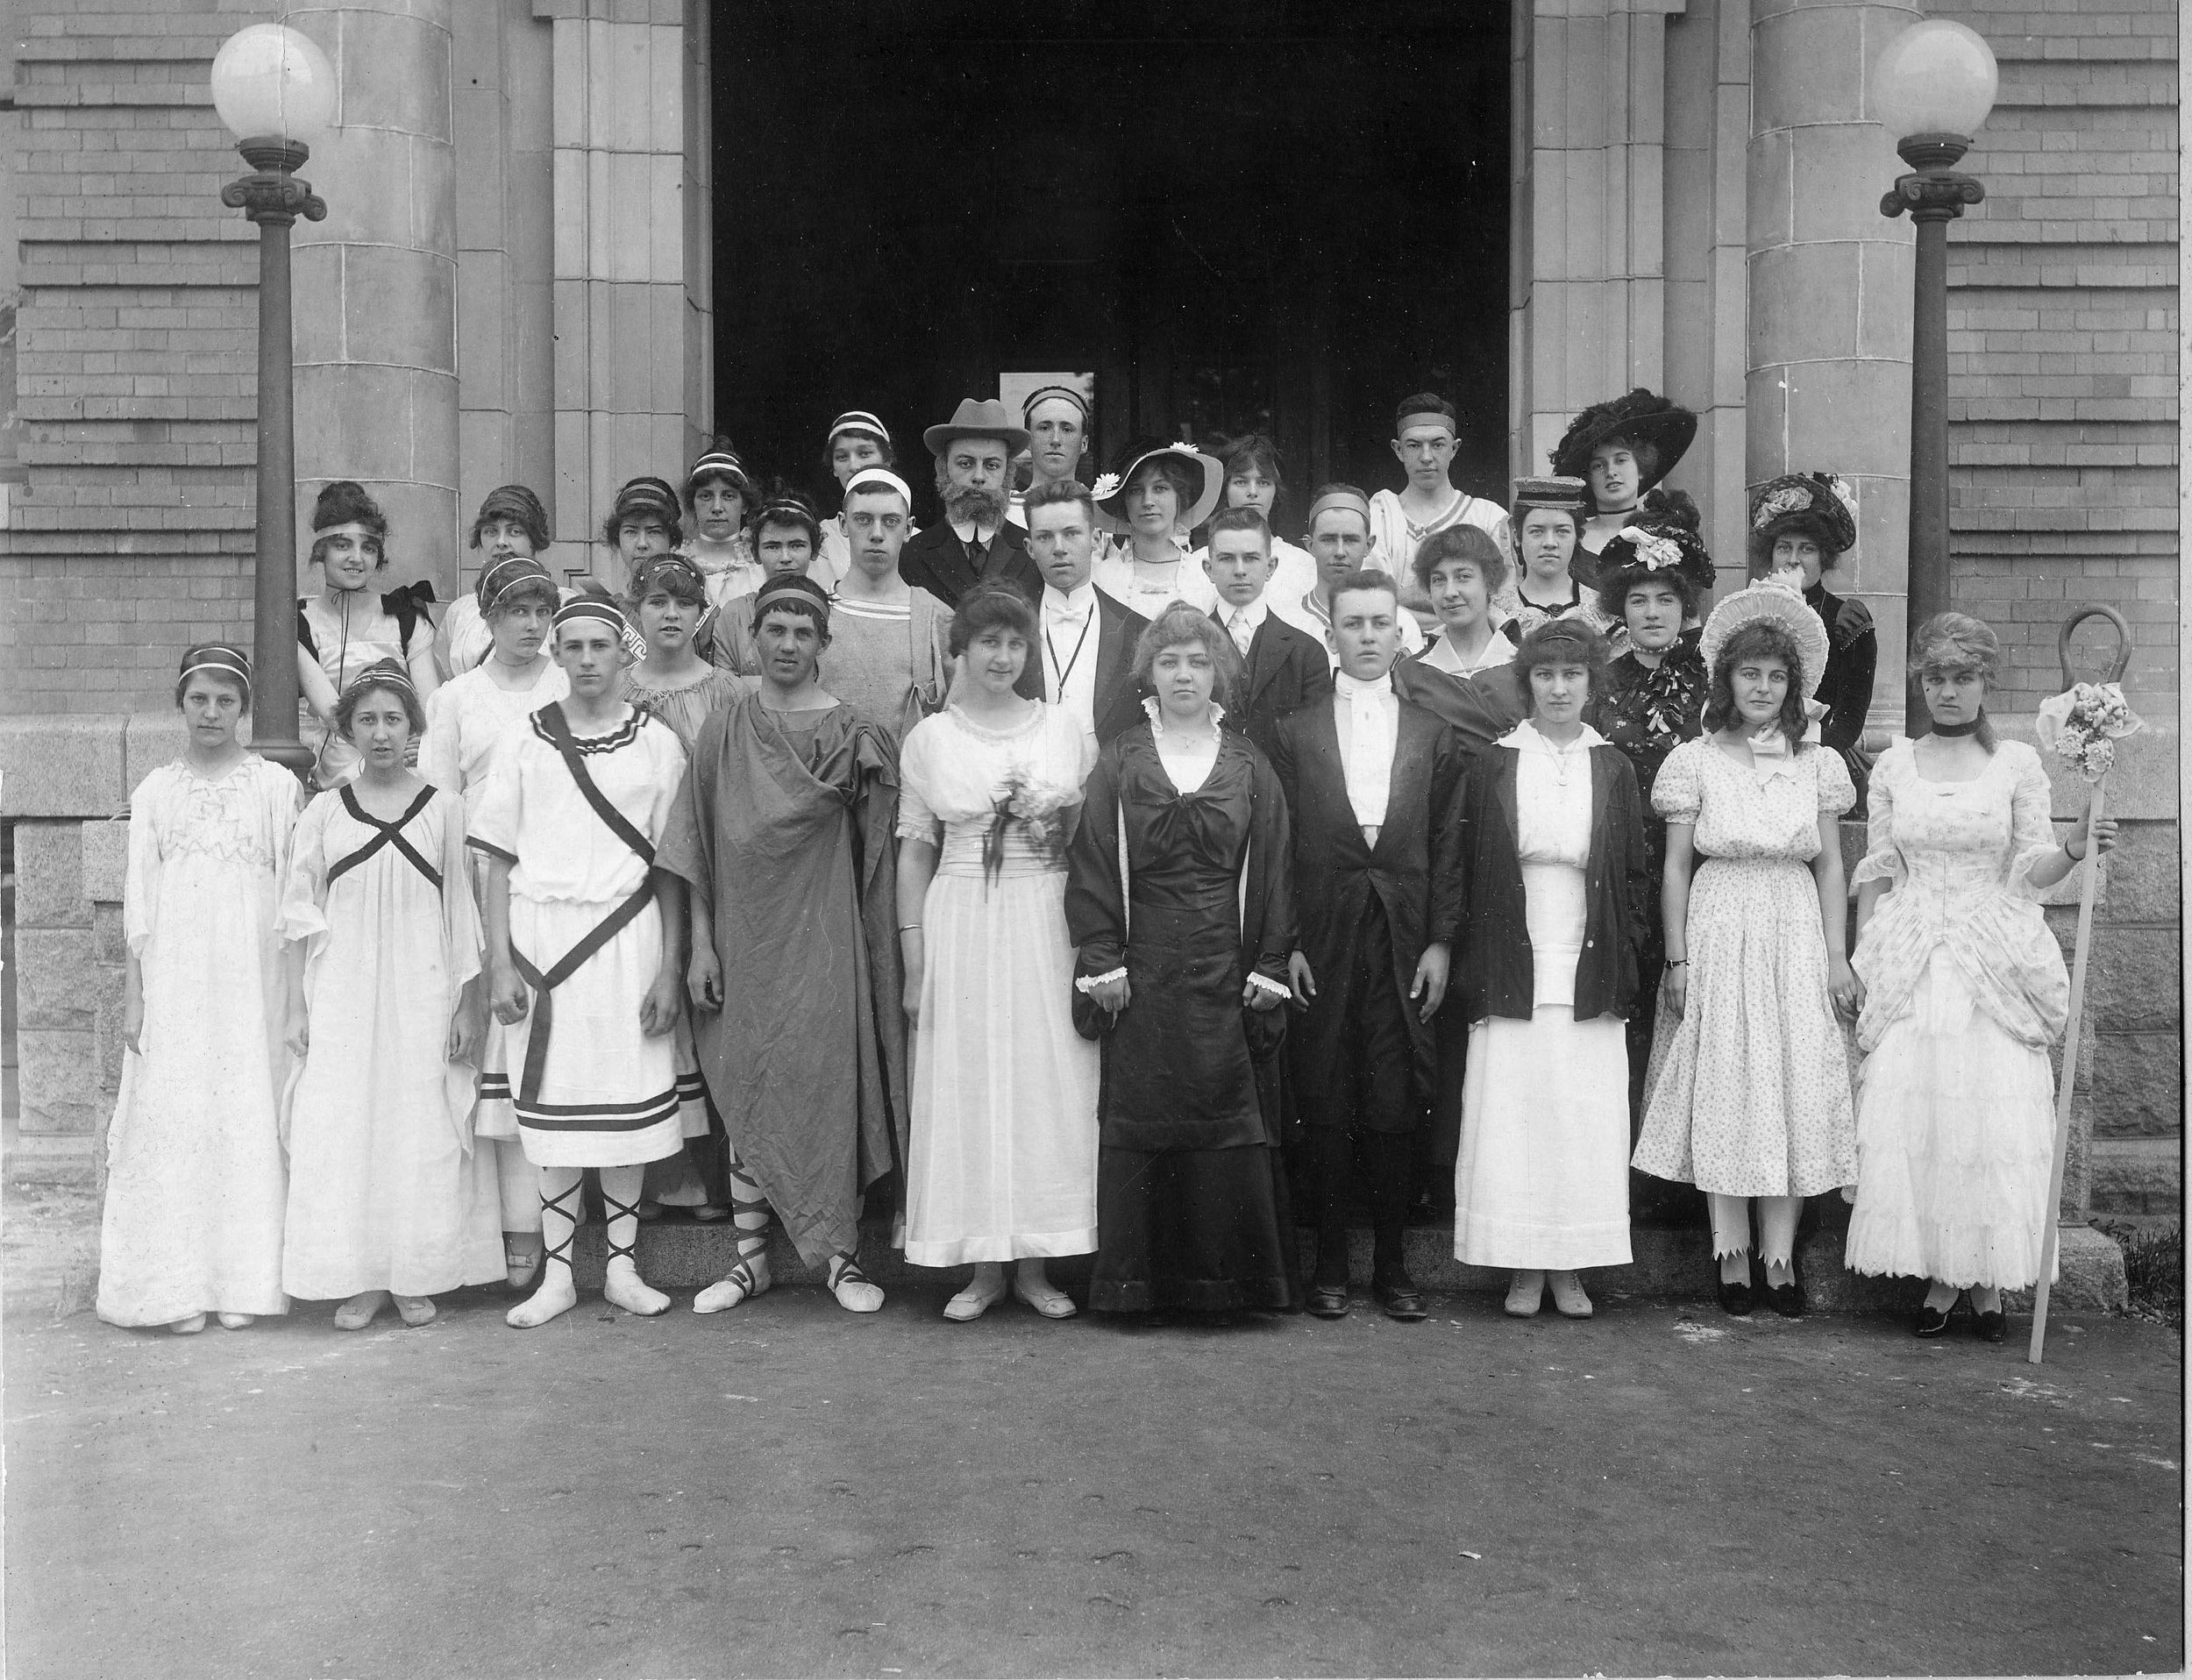 1916: Graduates from Skowhegan High School.